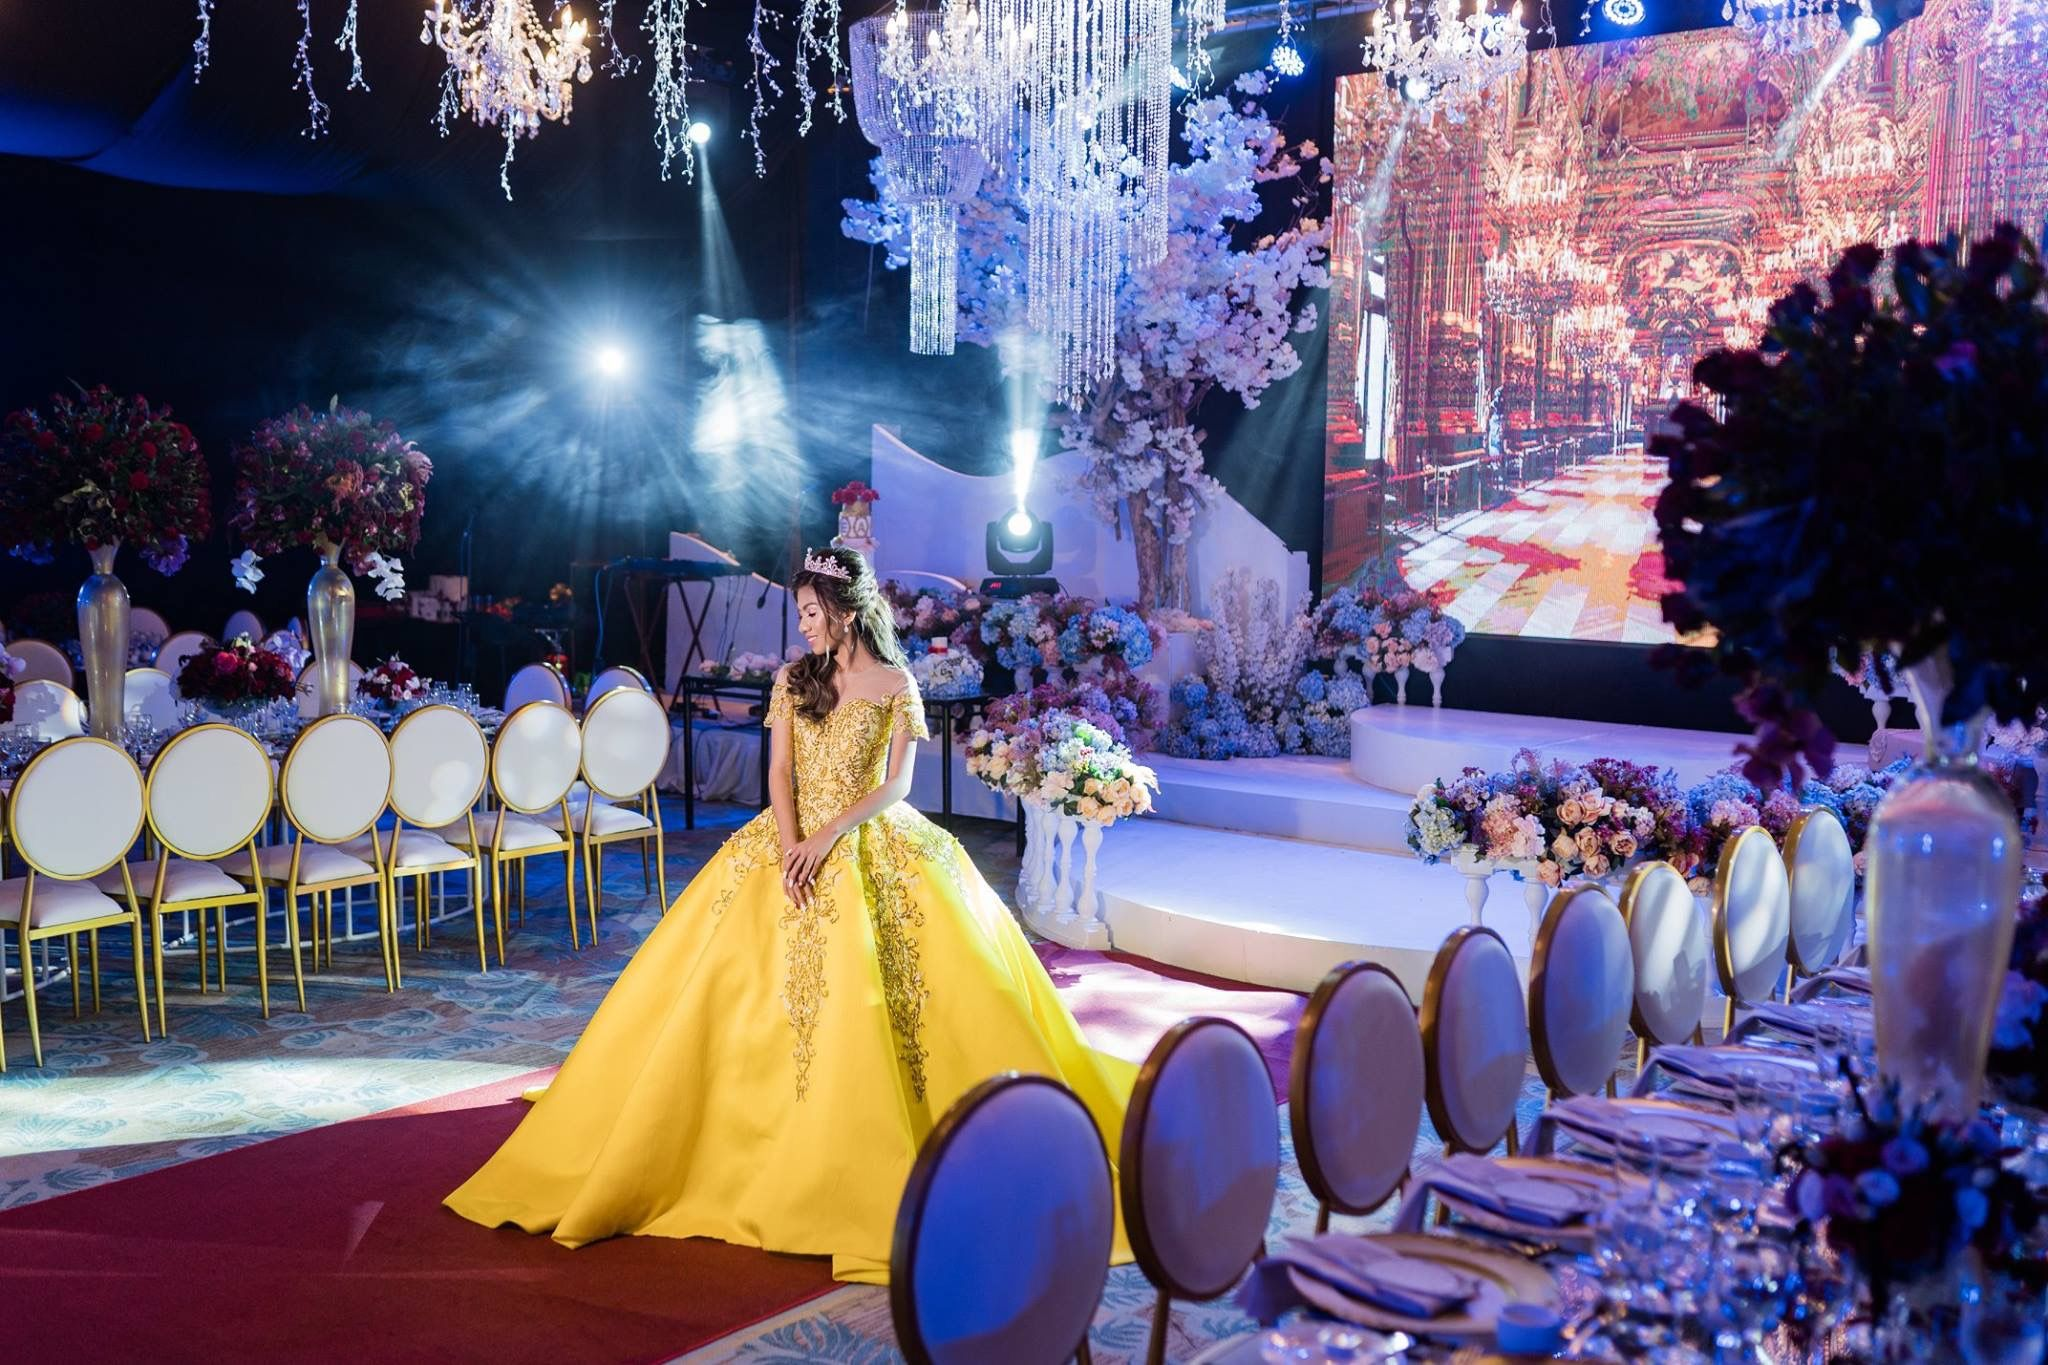 Beauty And The Beast Themed Debut Party Beaxviii Davaoevents